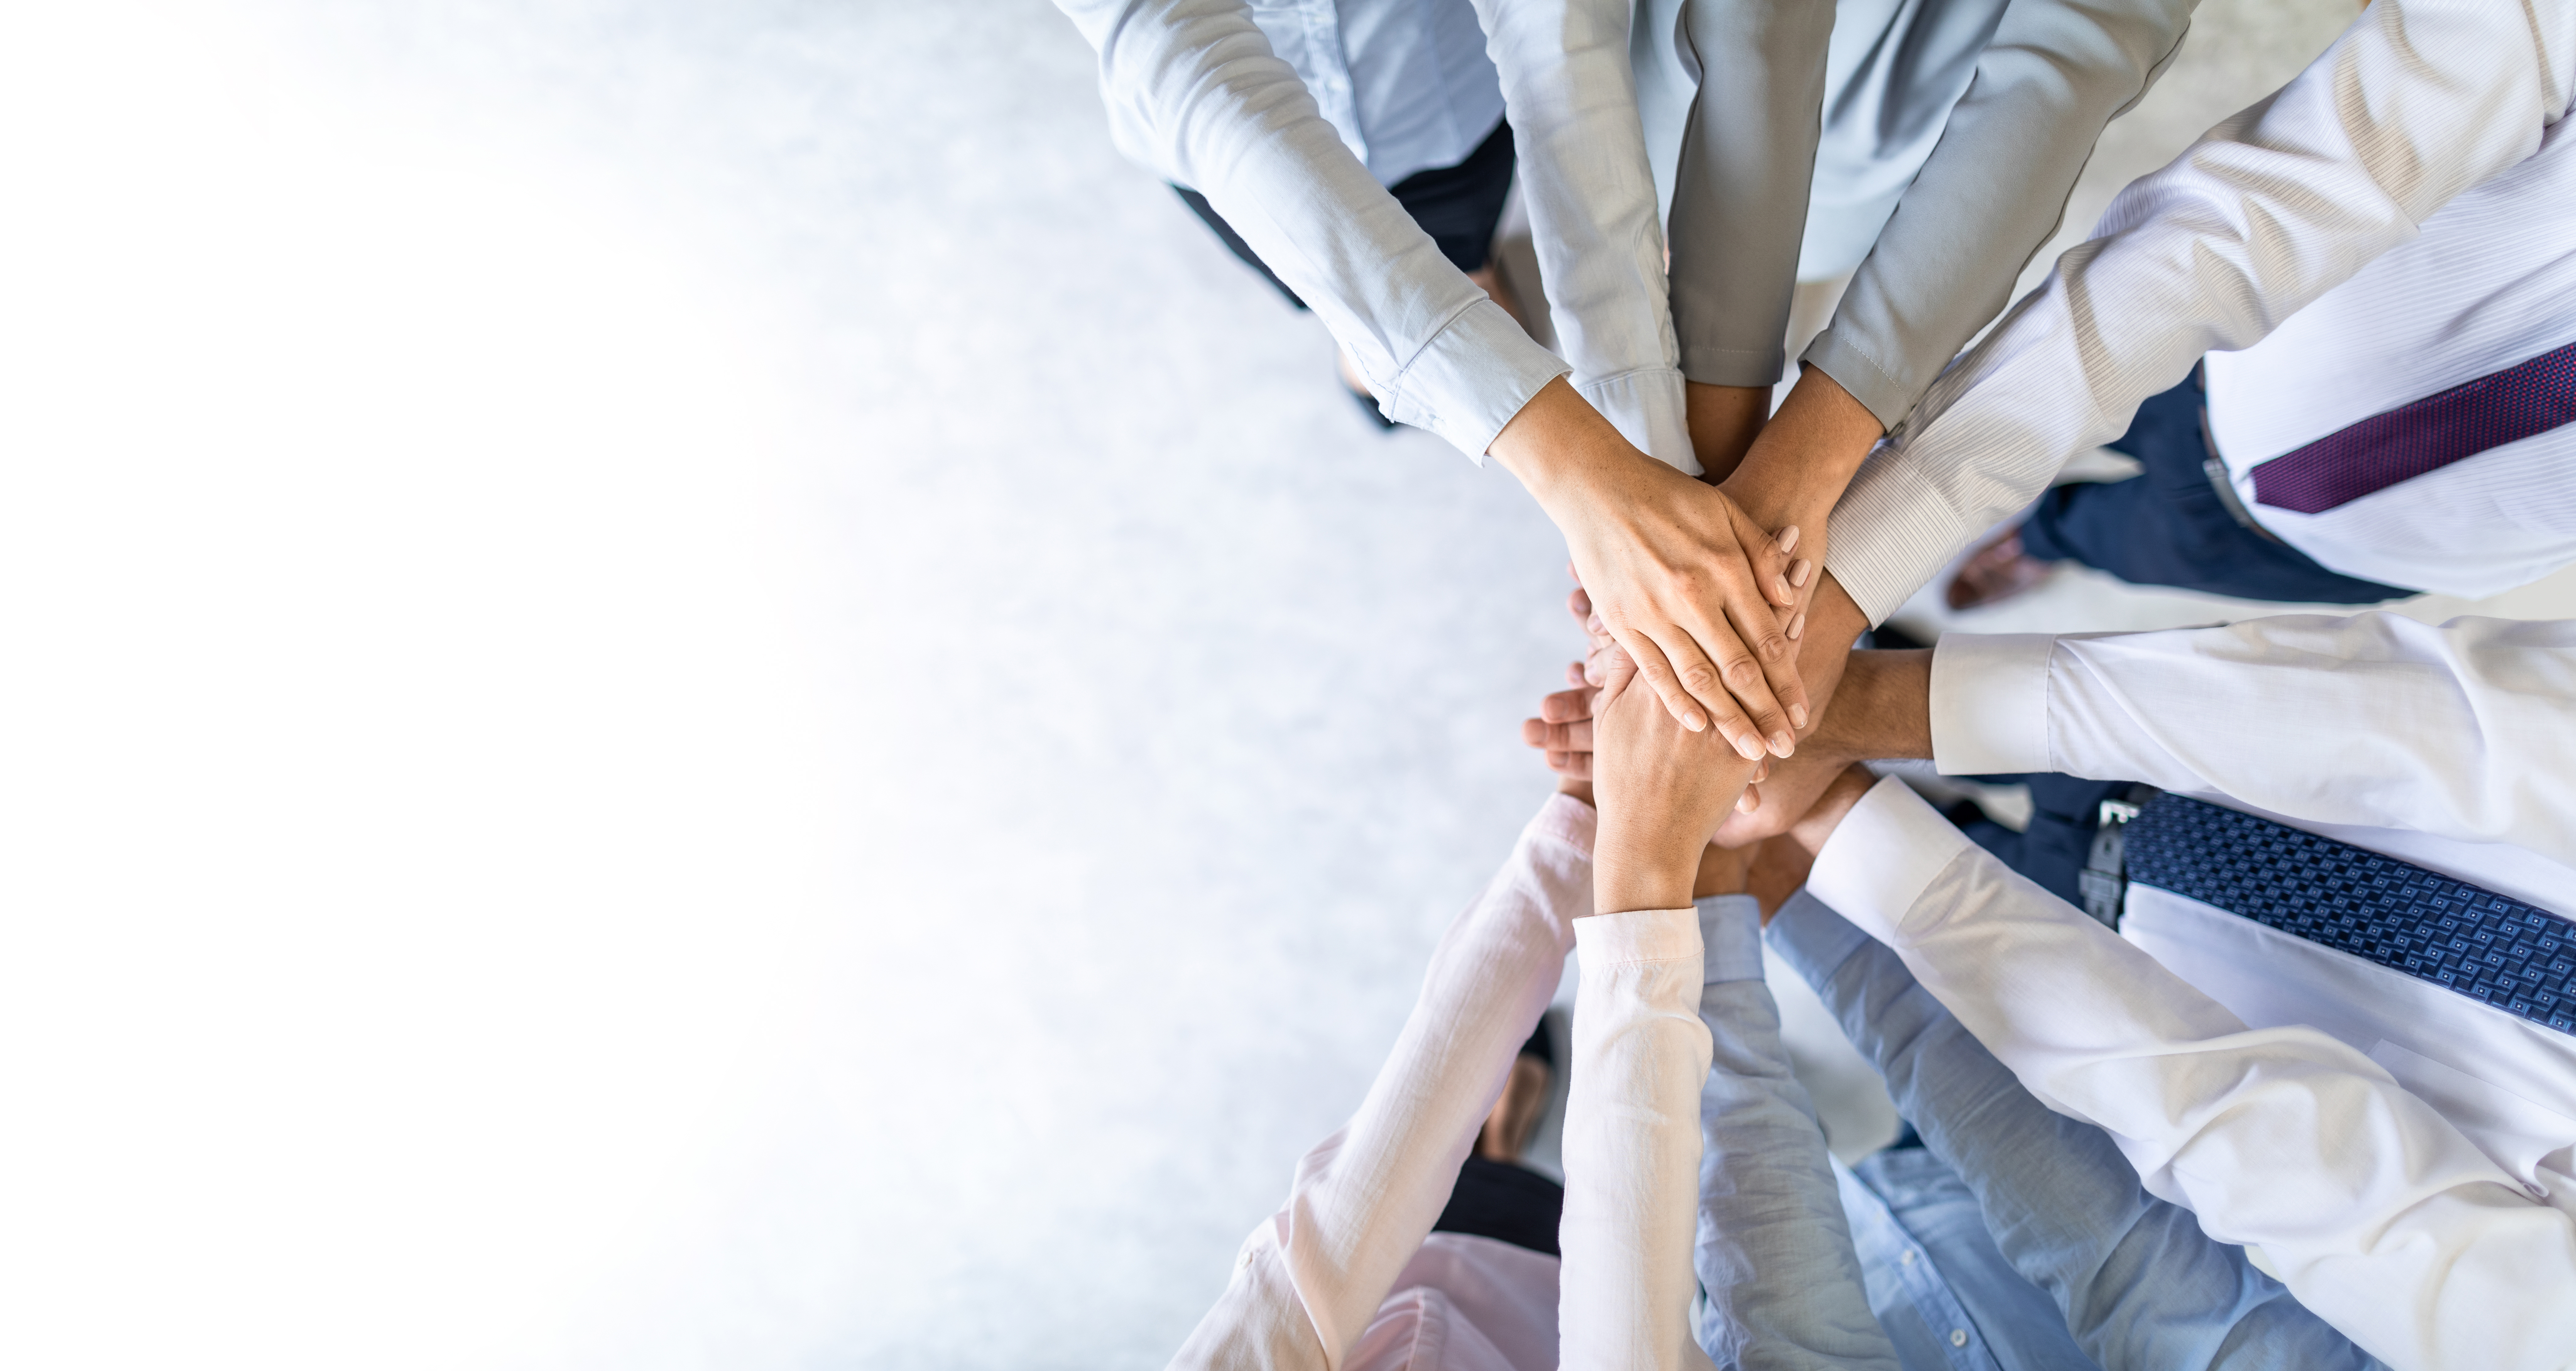 Hands put together in a circle for teamwork